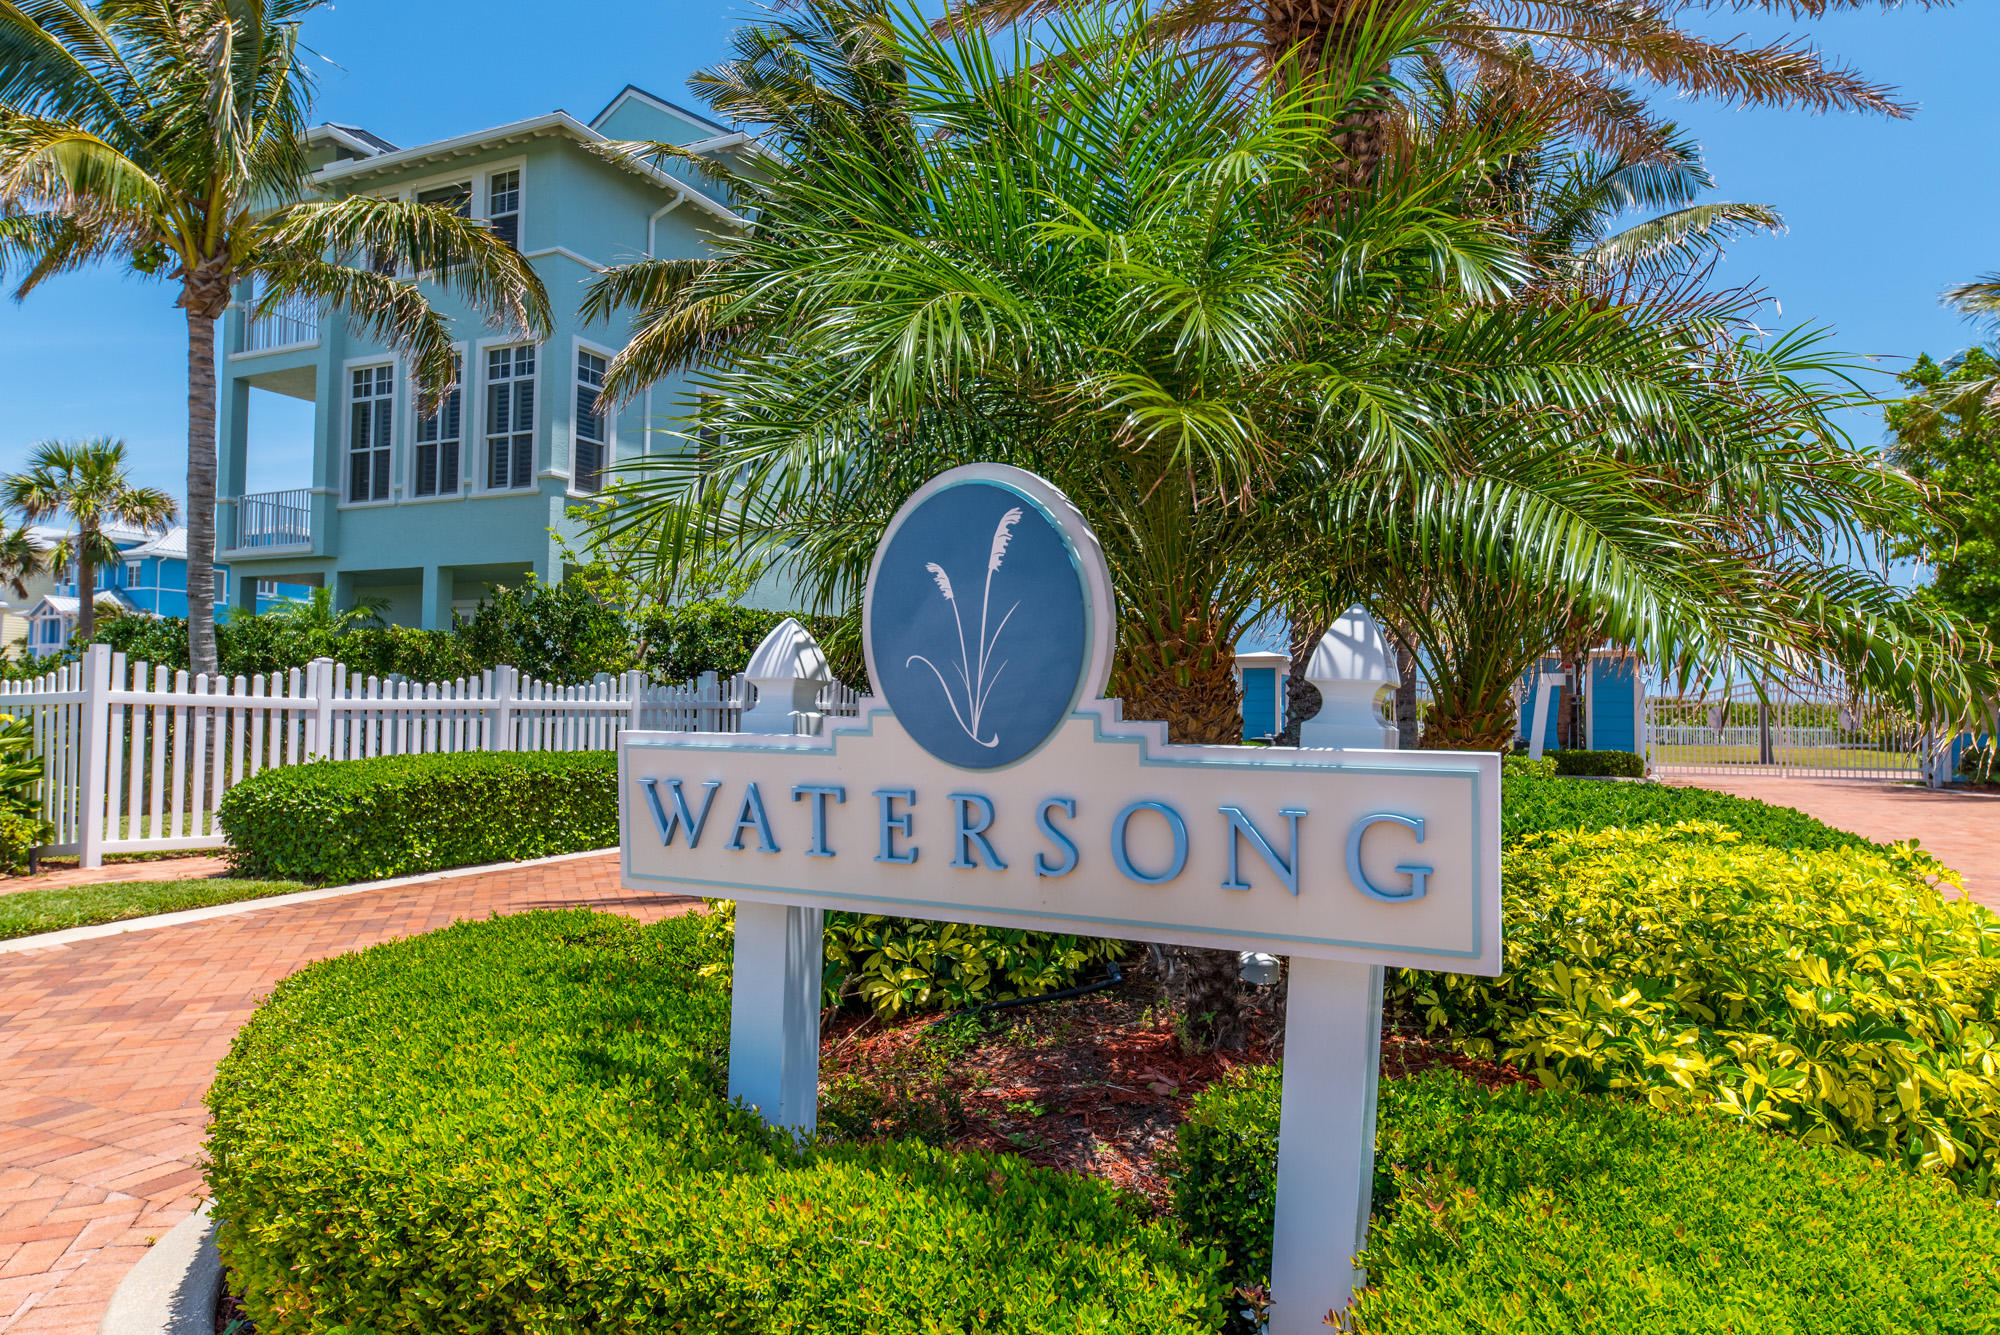 WATERSONG REALTOR